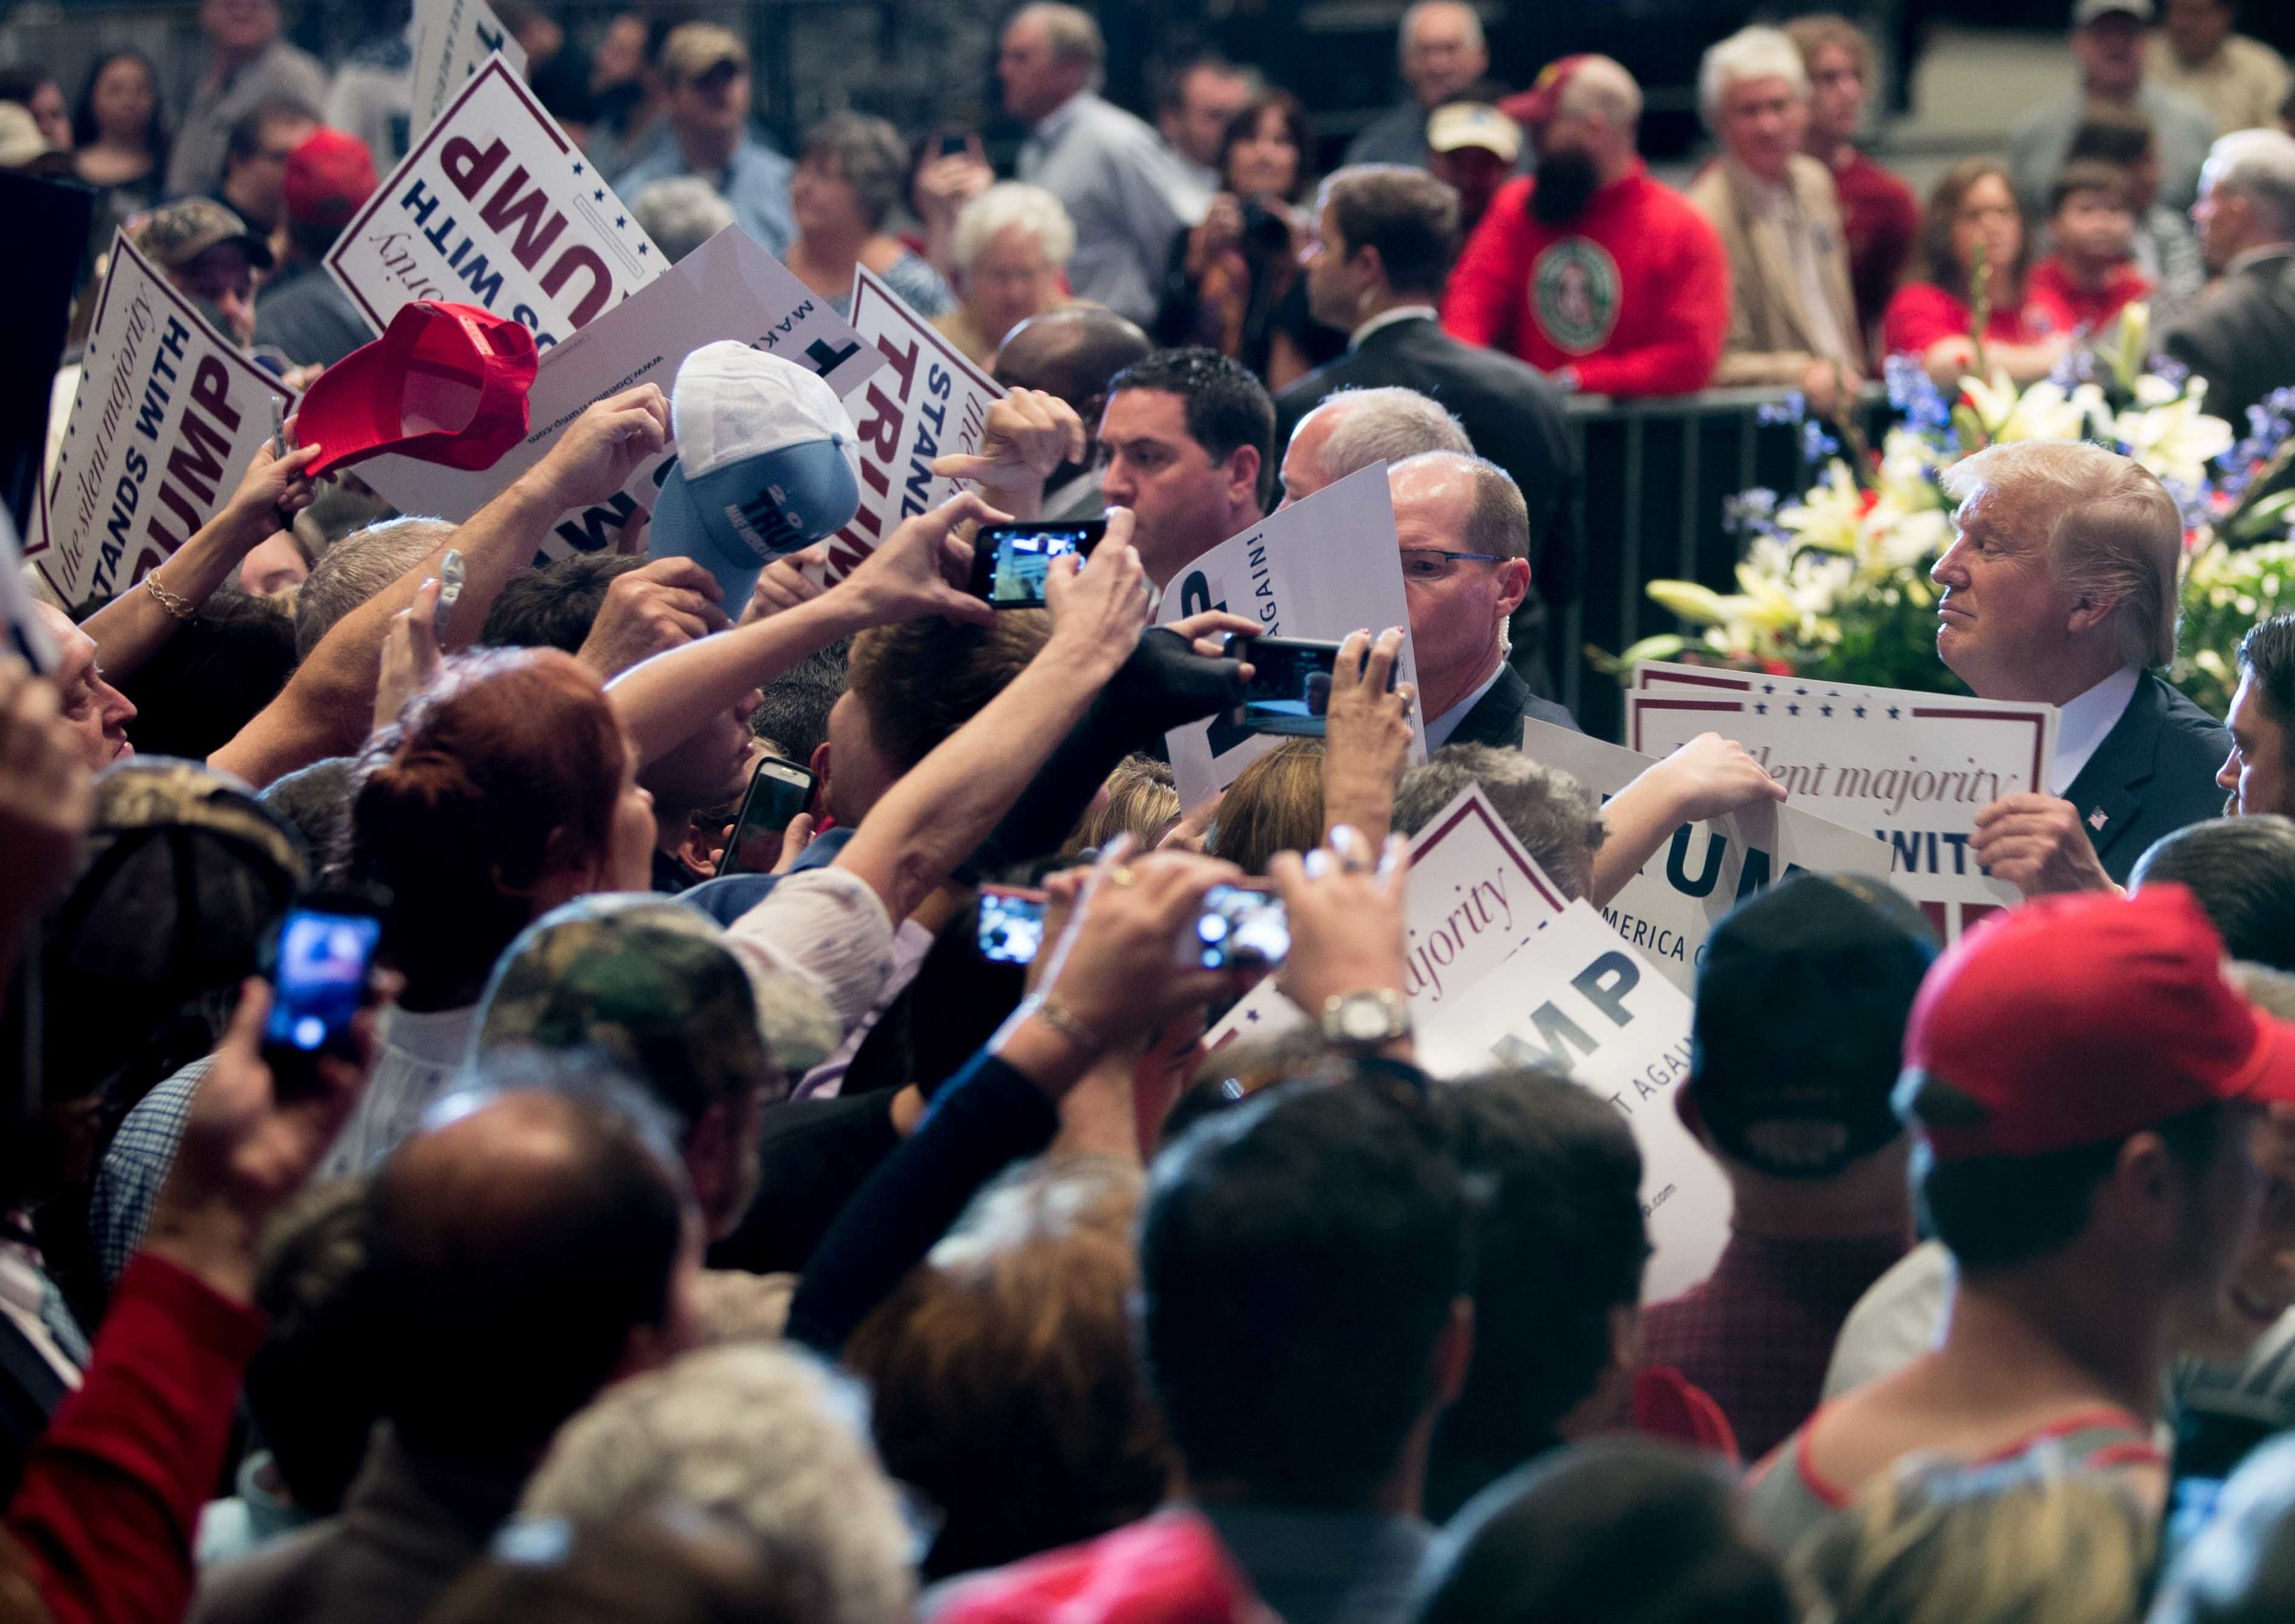 Republican presidential candidate Donald Trump signs autographs after speaking at a campaign rally, Monday, Nov. 30, 2015 at the Macon Centreplex in Macon, Ga. (AP Photo/Branden Camp)